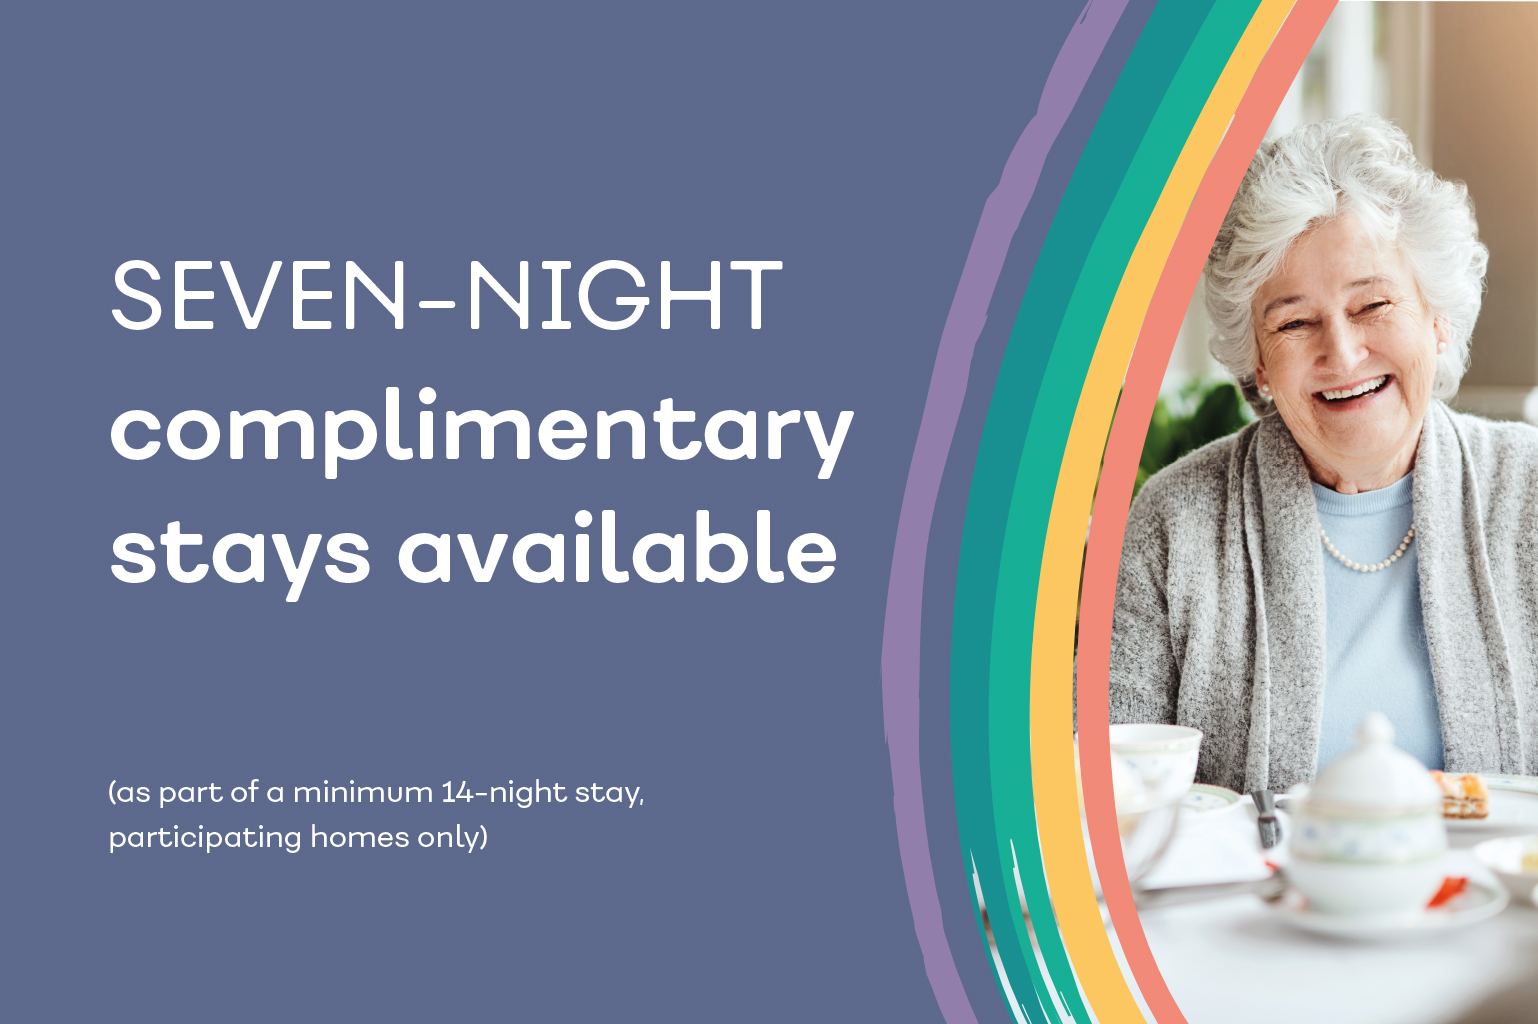 Seven night complimentary stays available